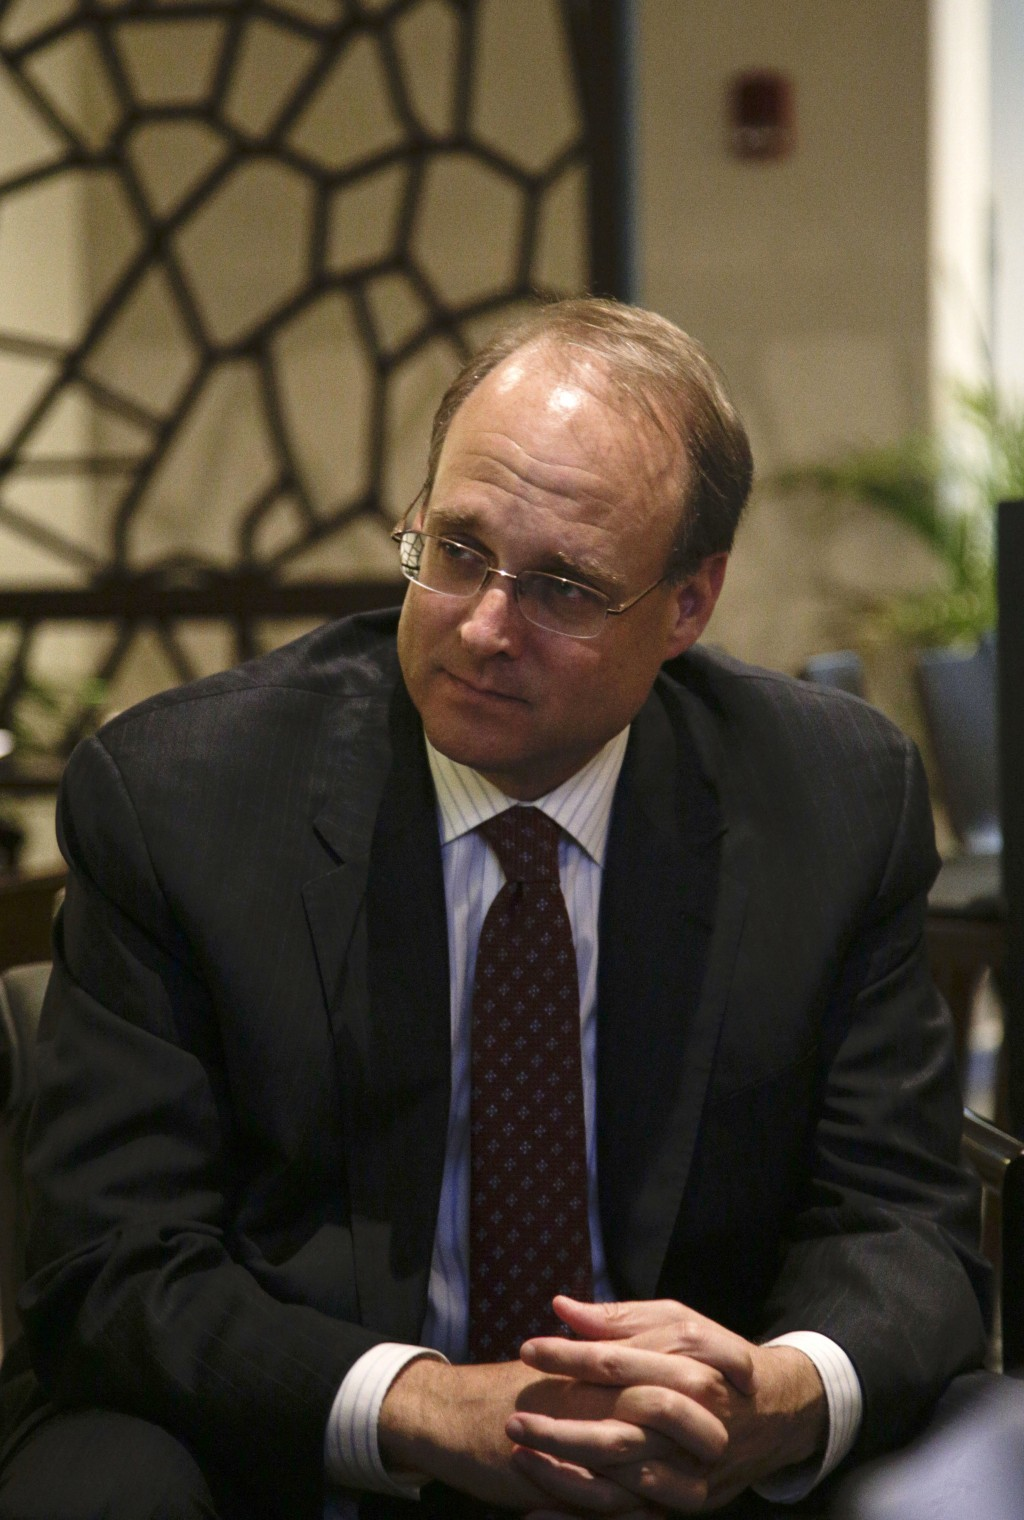 In this June 1, 2018 photo, Marshall Billingslea, assistant U.S. Treasury Secretary for Terrorist Financing, listens to questions during a interview i...